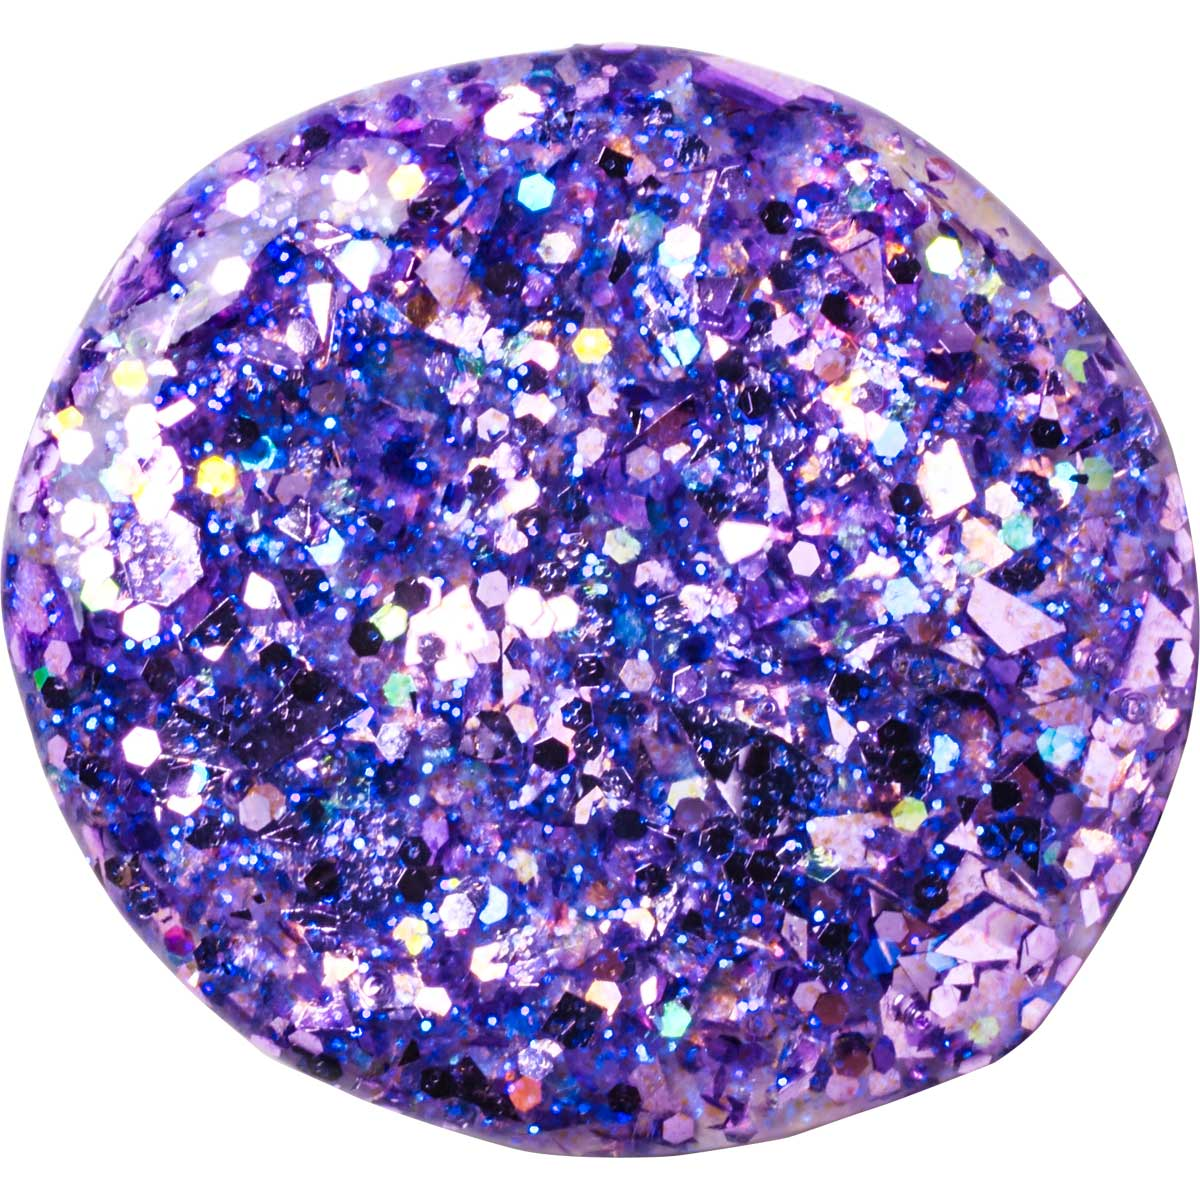 FolkArt ® Glitterific™ Acrylic Paint - Purple, 2 oz. - 5882